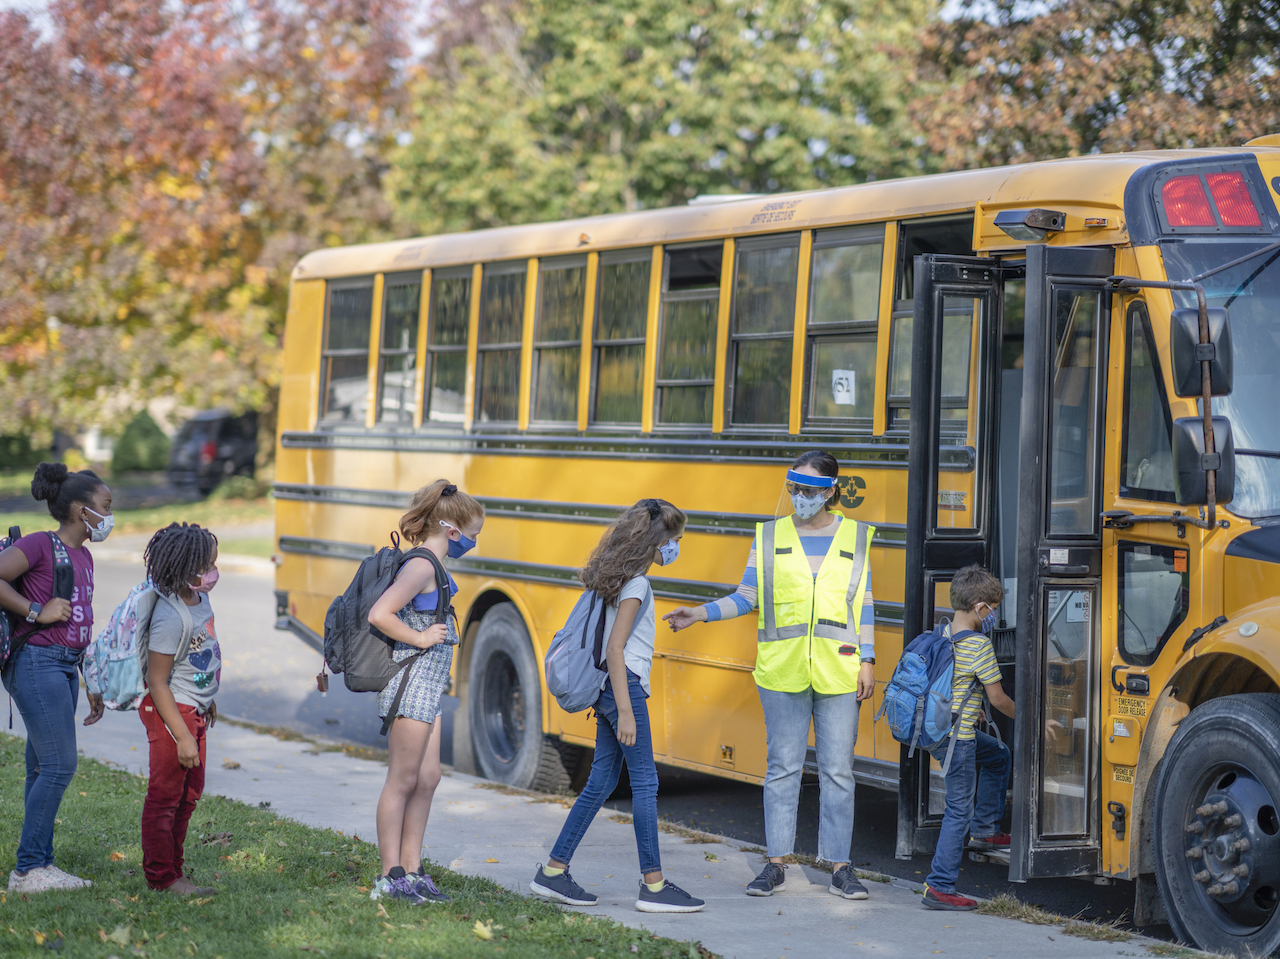 Students getting on the bus wearing protective face coverings due to COVID-19 regulations.